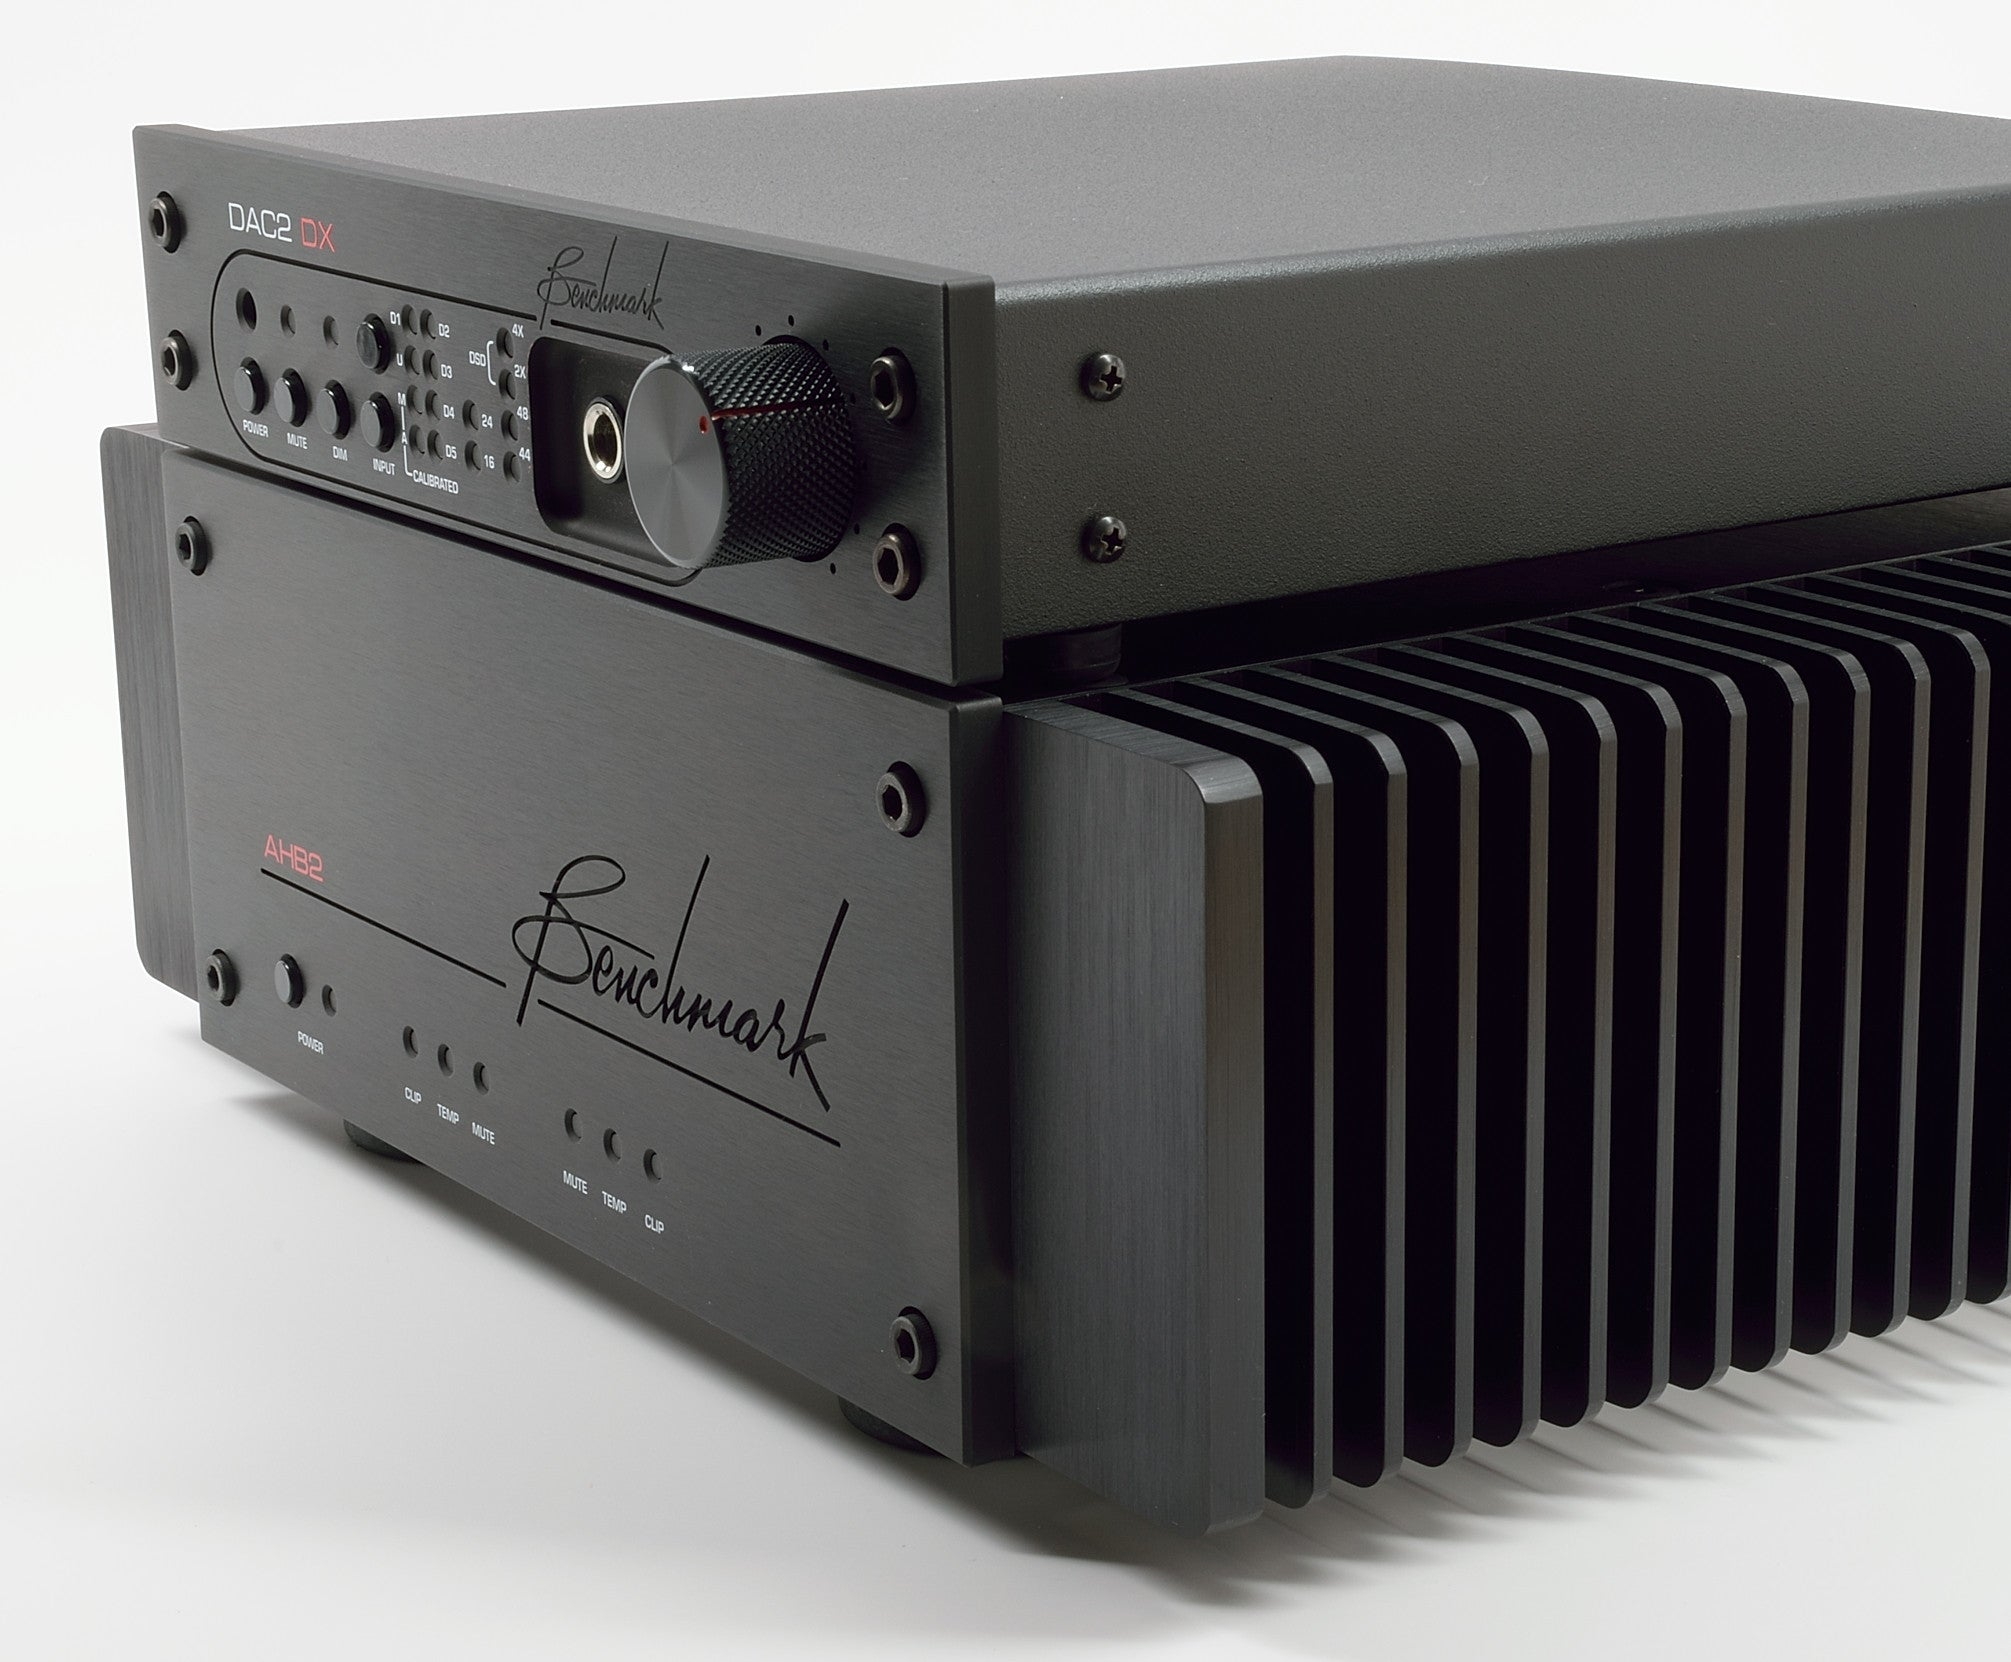 Benchmark Ahb2 Power Amplifier Benchmark Media Systems Inc